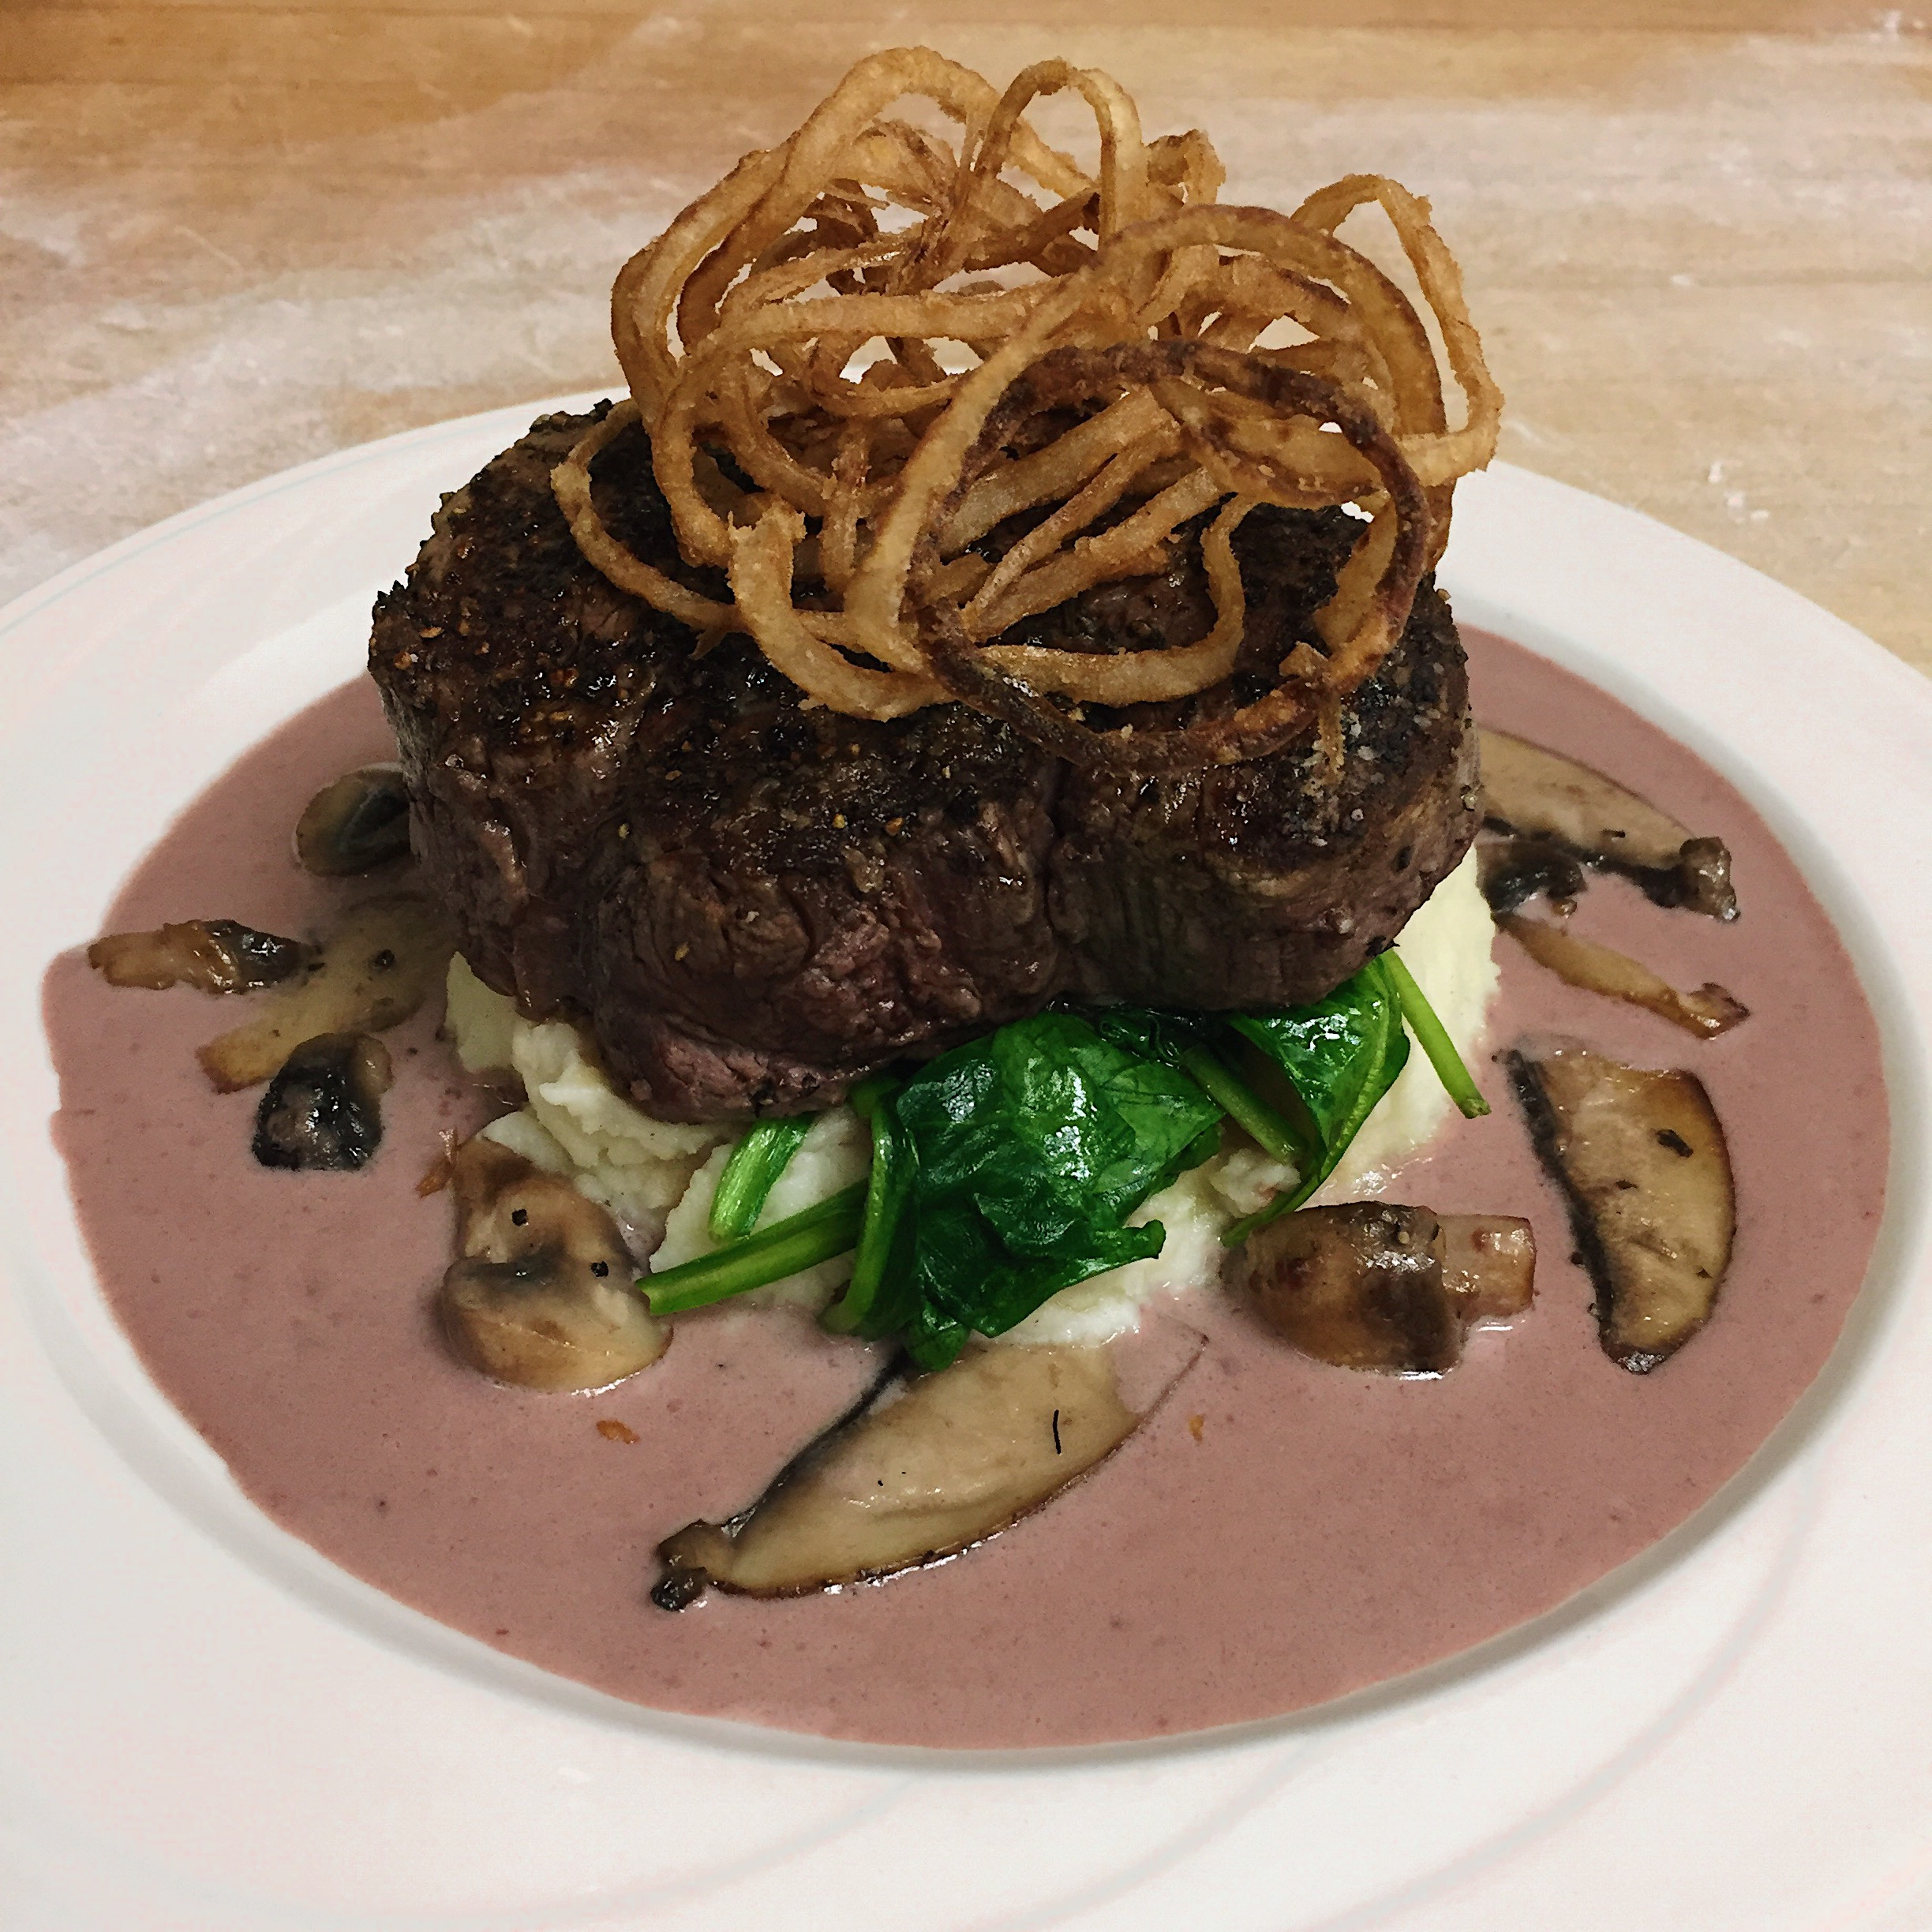 Filet Mignon served with mashed potatoes, sauteed spinach, and a cabernet reduction topped with fried onions